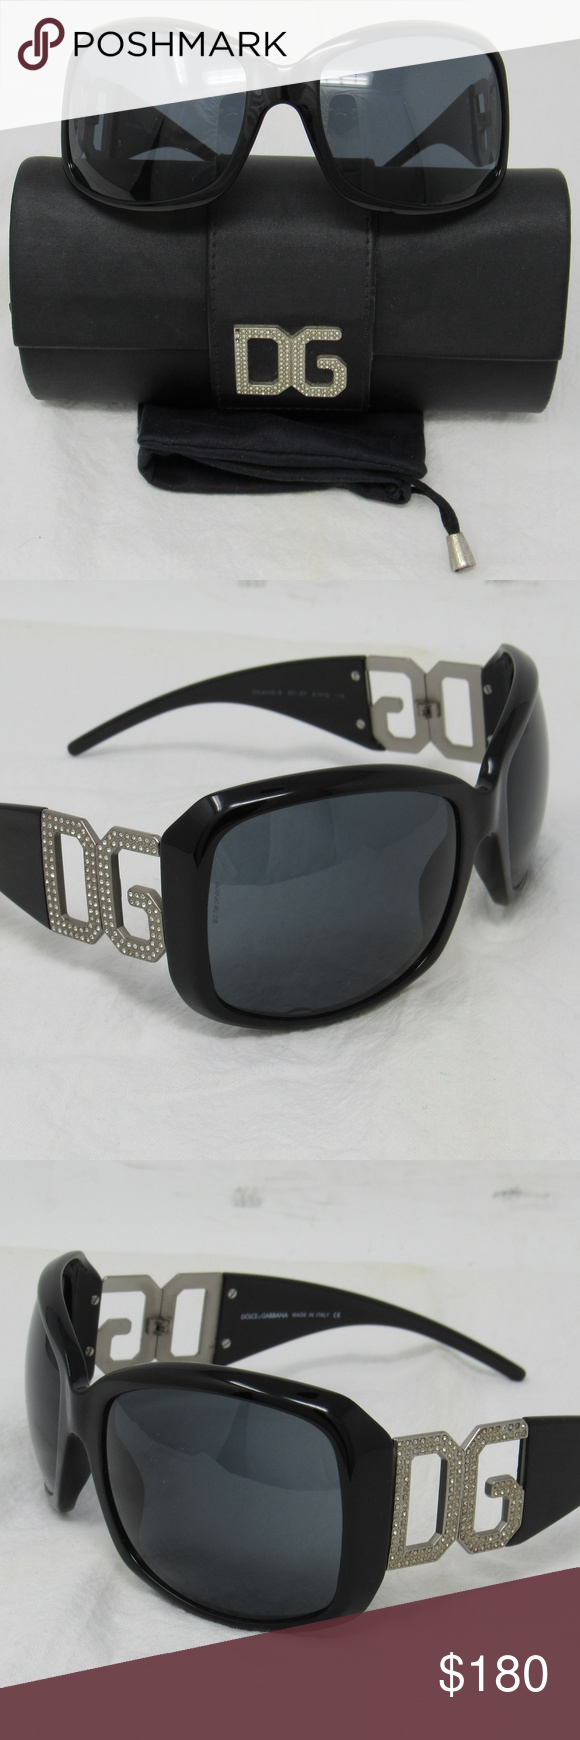 c21a4549bba0 Dolce   Gabbana sunglasses 6005-B Made in Italy Black D G sunglasses with  encrusted crystals. Stylish and pretty. The measurements in mm are 61 19  115  ...